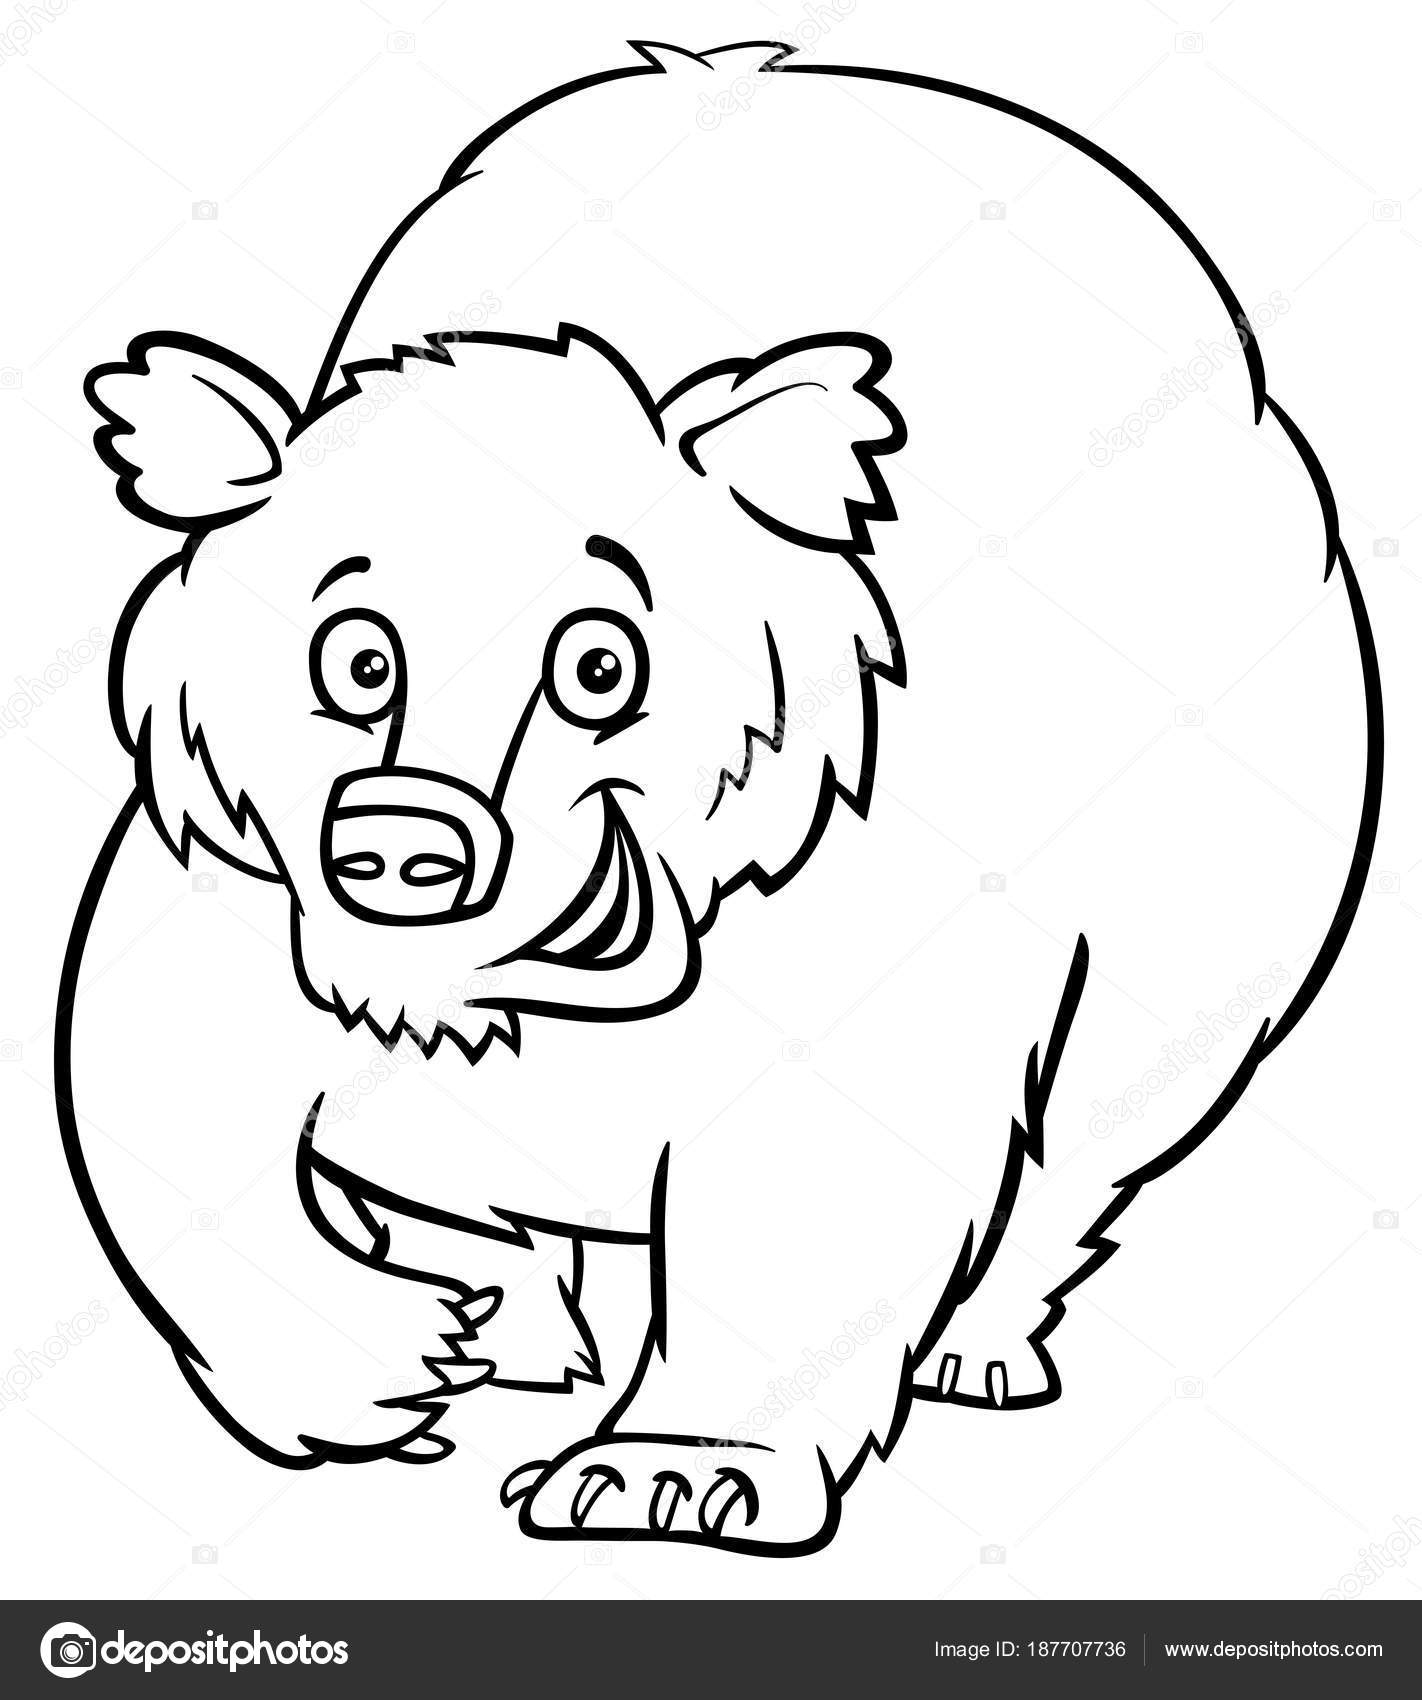 personaje animal de dibujos animados oso libro de colorear — Vector ...